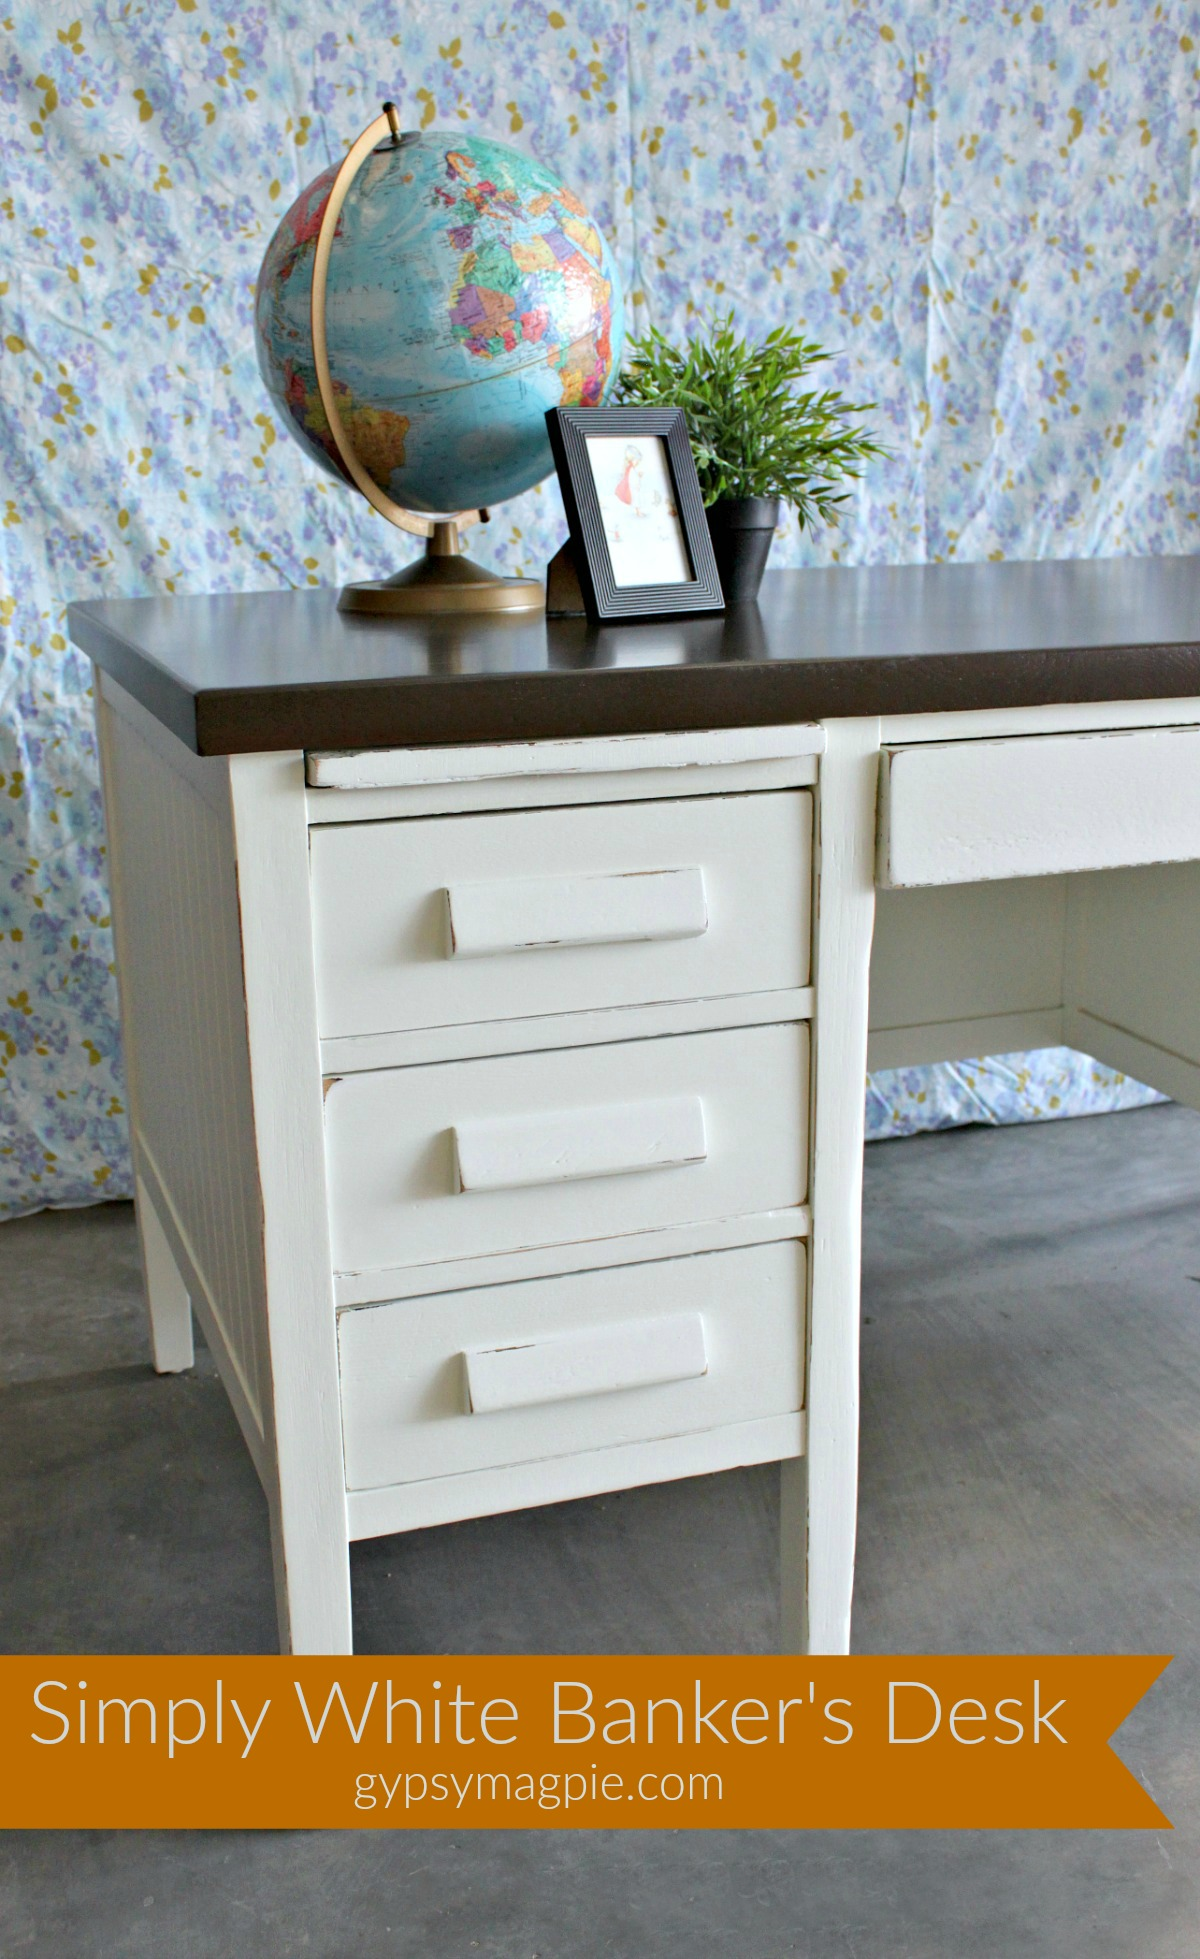 Come see how this wonderful old banker's desk got a new life with a little love and some Simply White paint | Gypsy Magpie